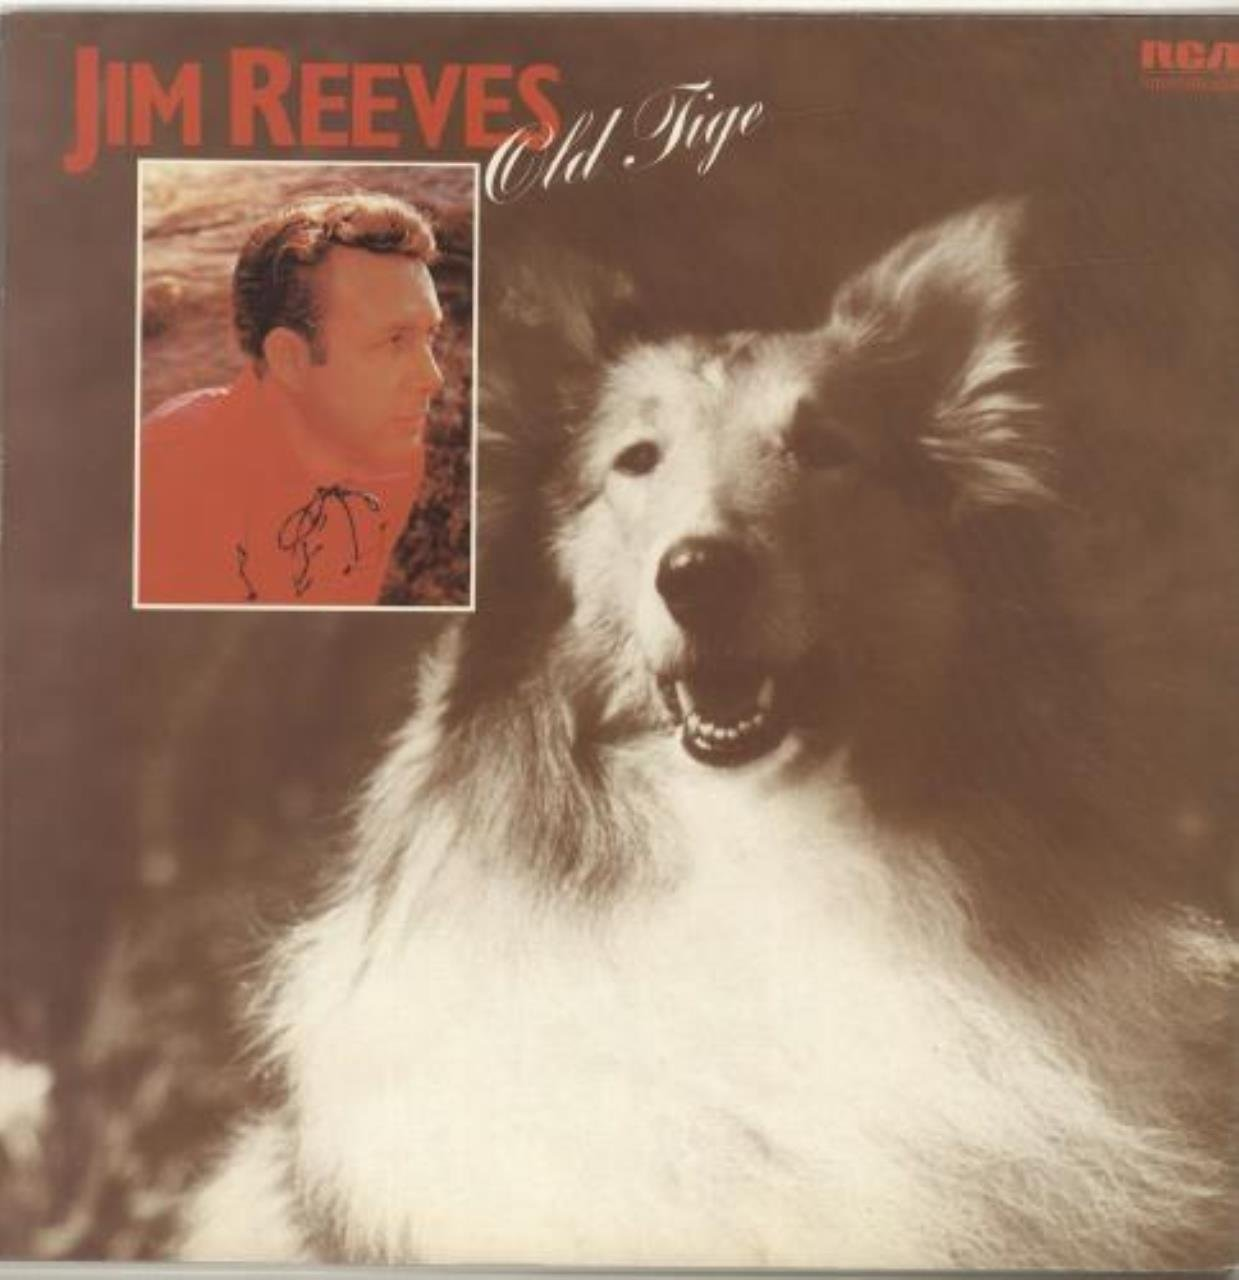 Jim Reeves - Old Tige - Amazon.com Music